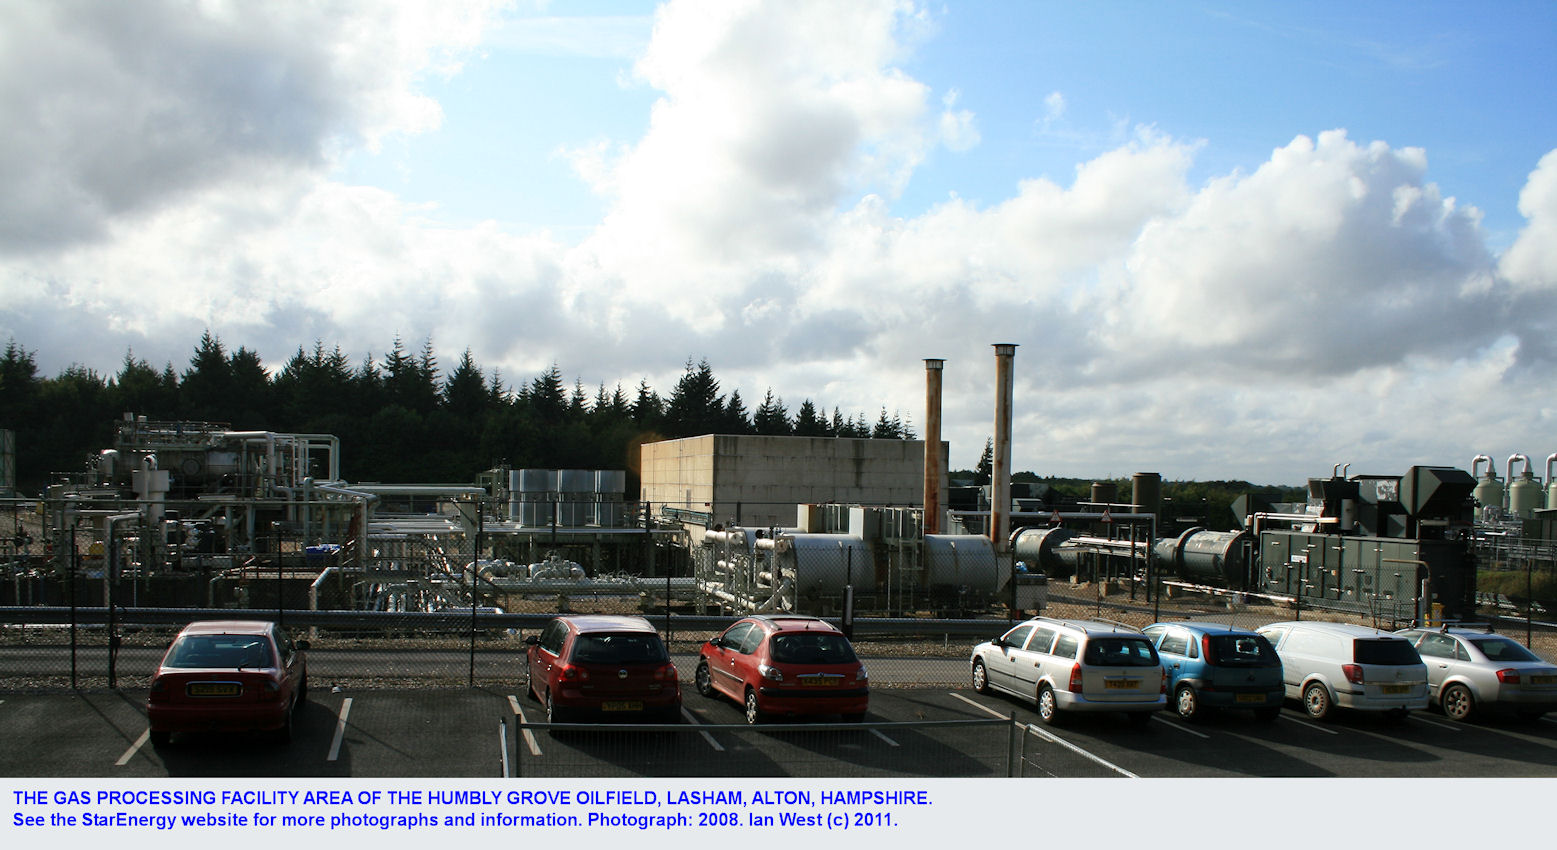 Humbly Grove gas processing site, belonging to StarEnergy, Humbly Grove, Lasham, near Alton, Hampshire, 2008